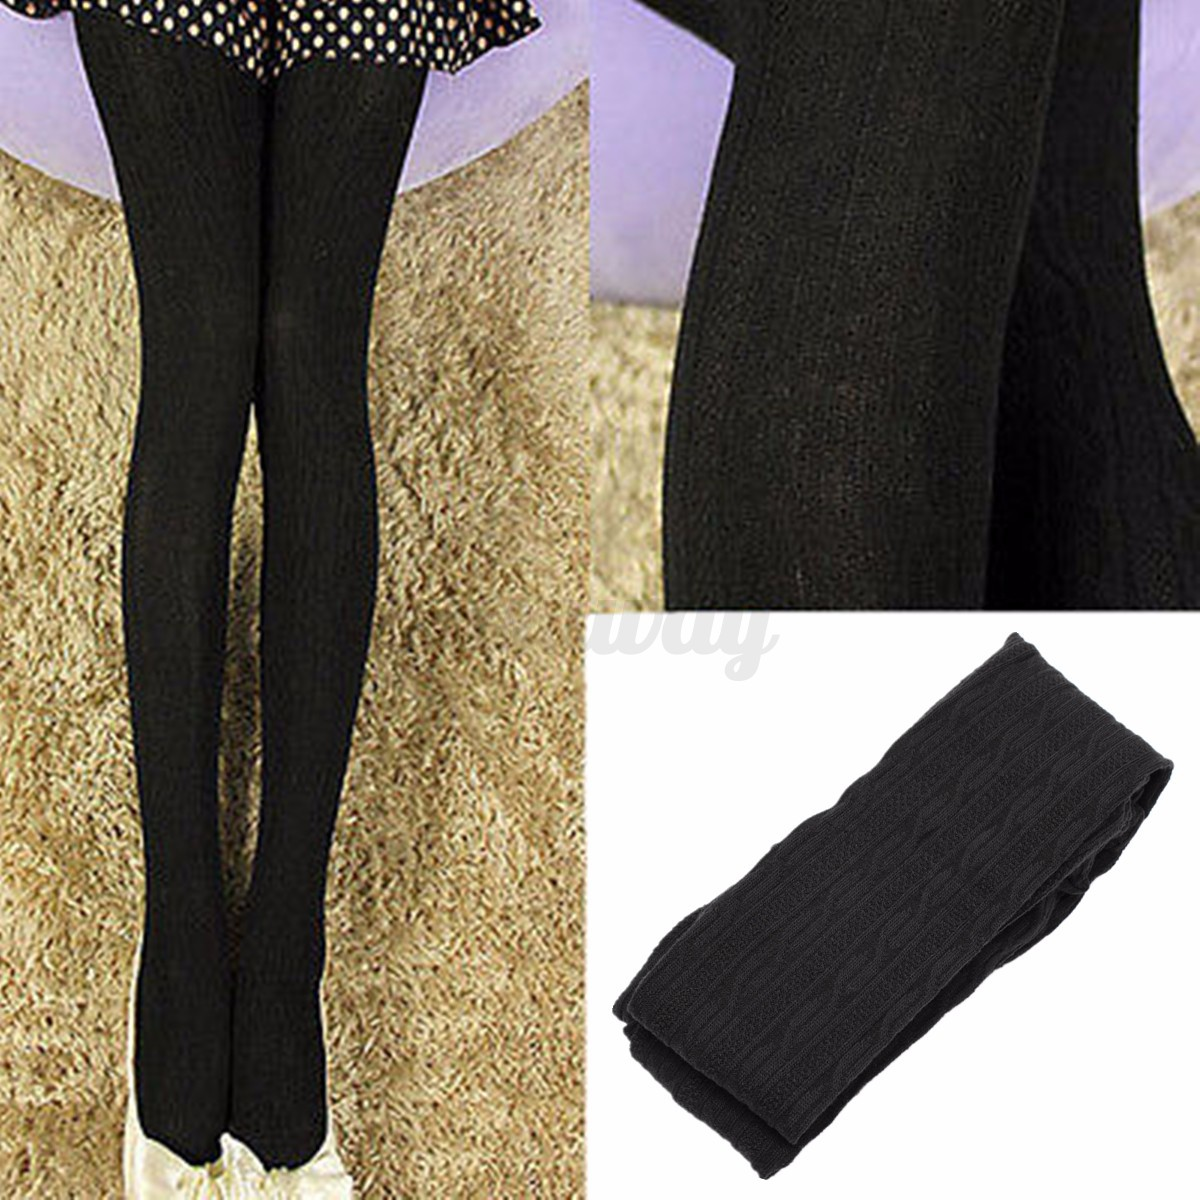 femme fille leggings chaussette collant jambi res bas tricot pais chaud hiver ebay. Black Bedroom Furniture Sets. Home Design Ideas